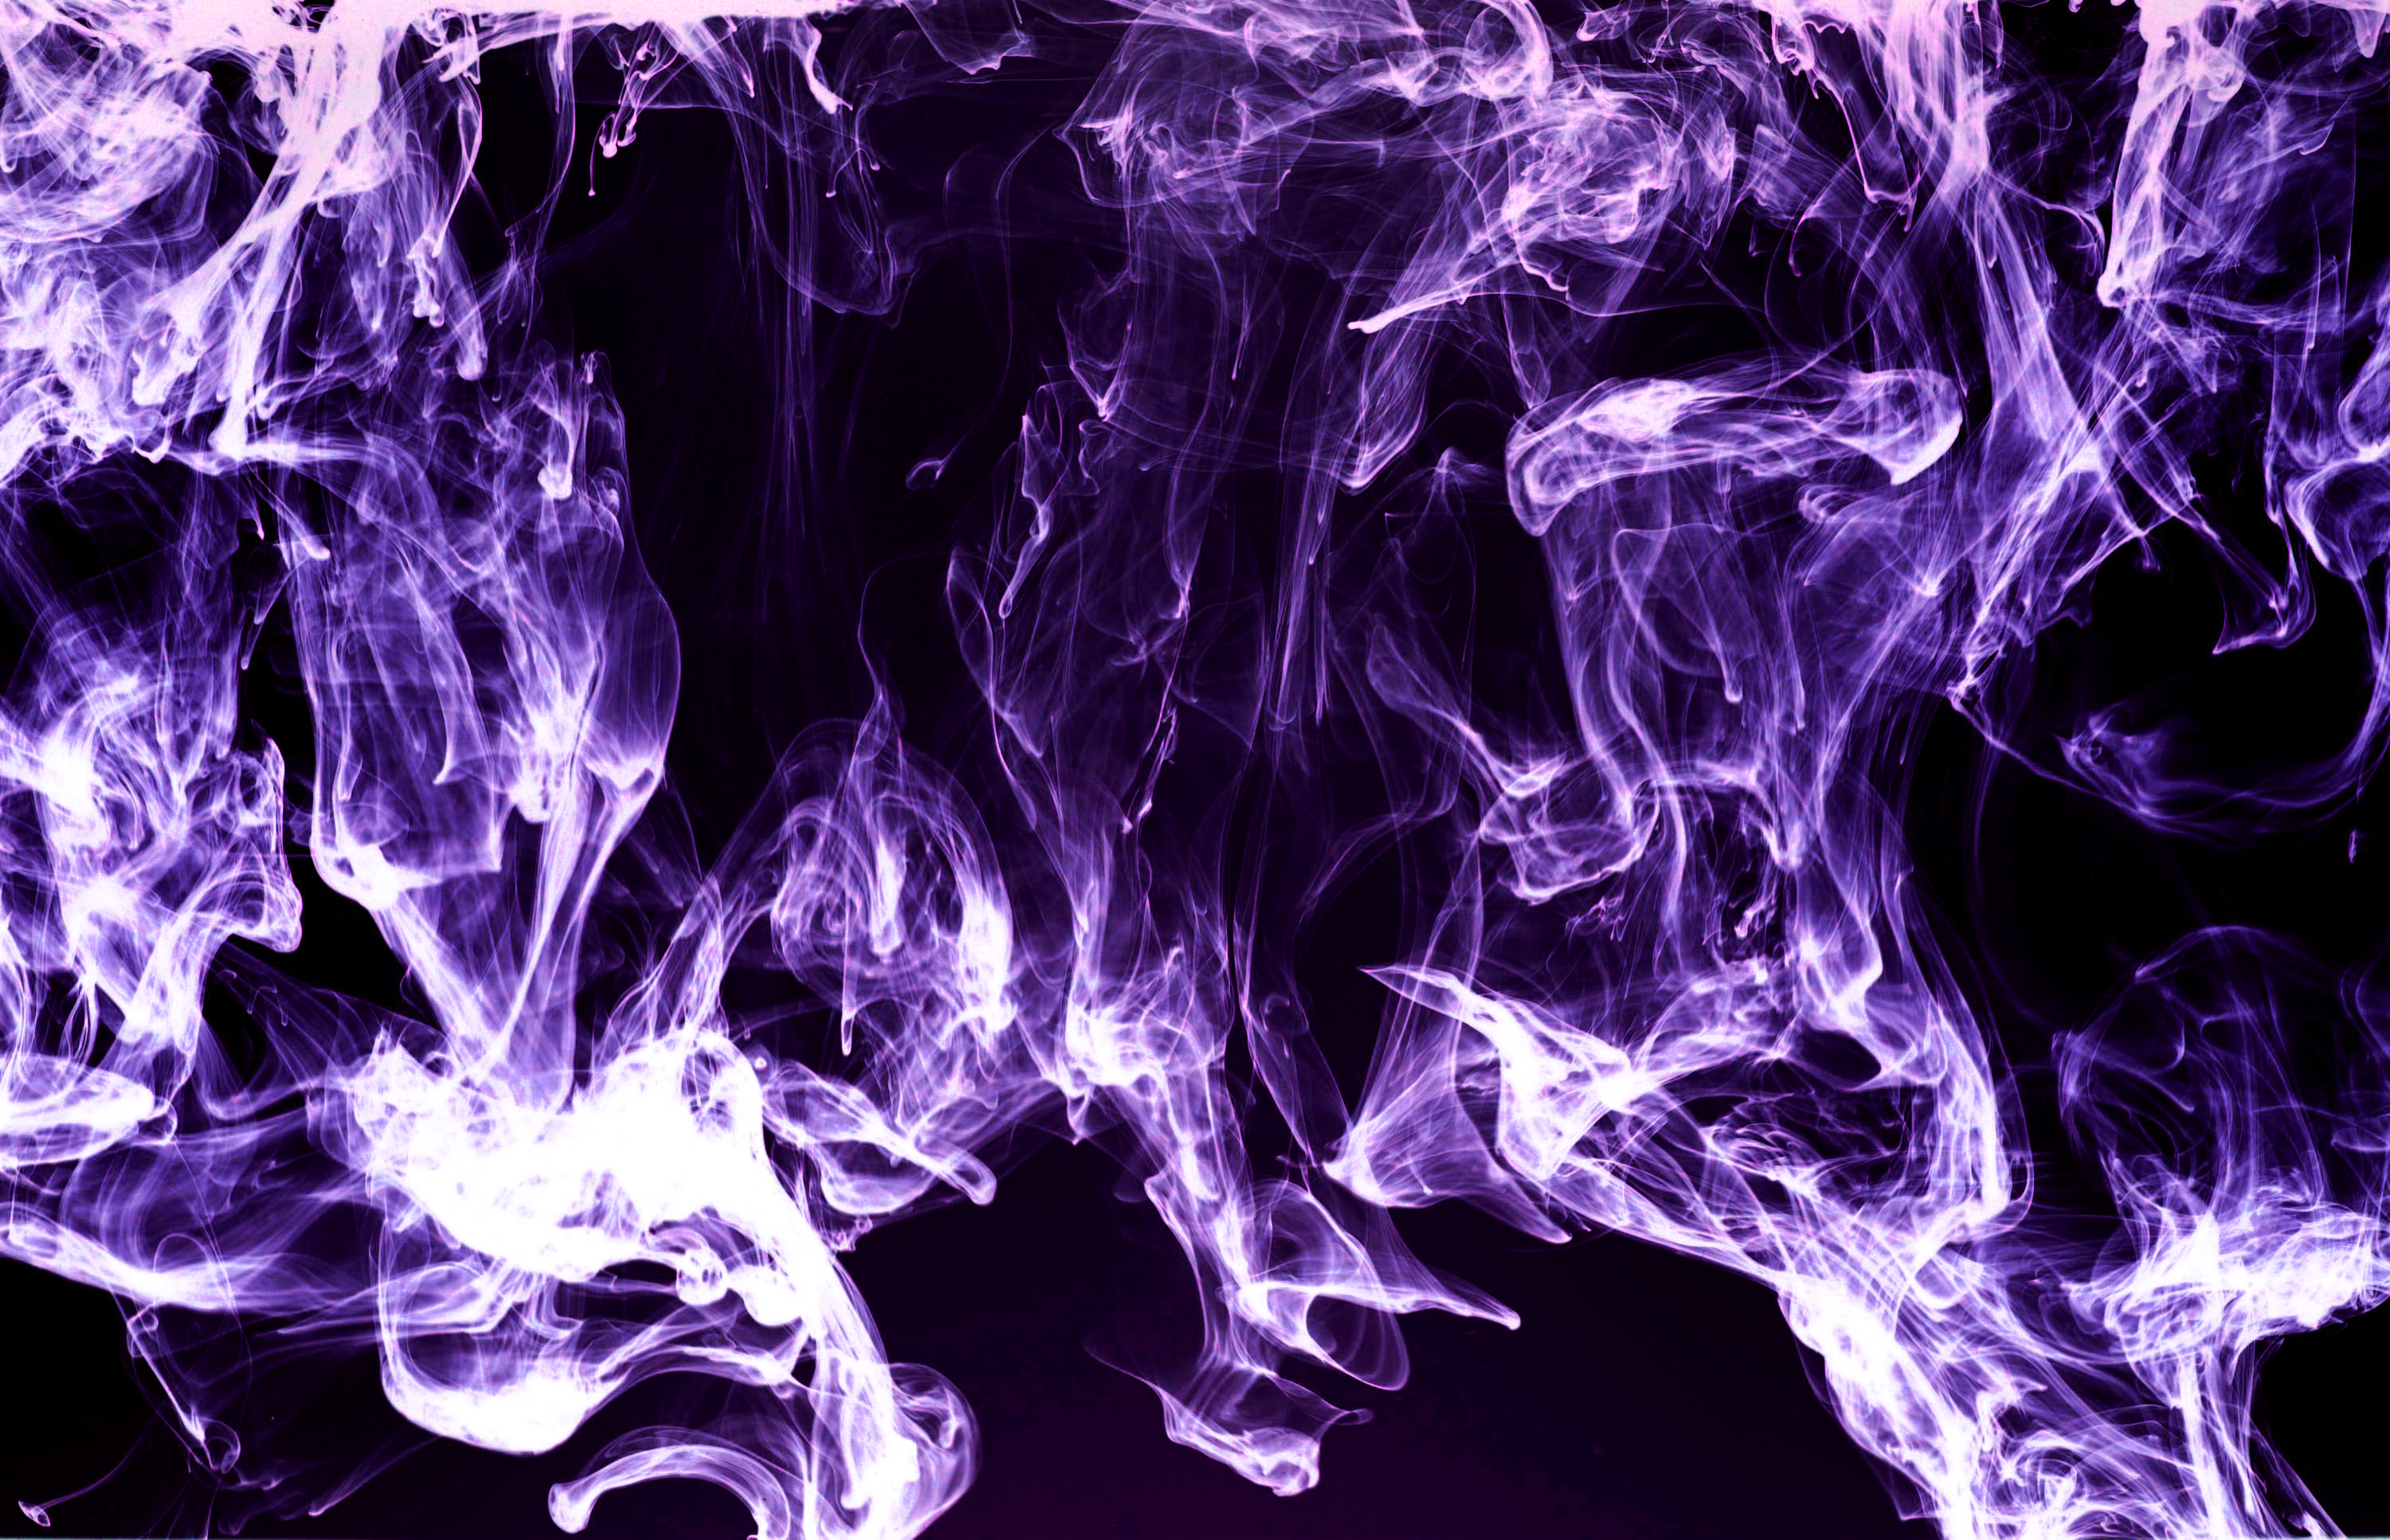 Violet Smoke Art Wallpapers: Smoke Wallpapers, Pictures, Images